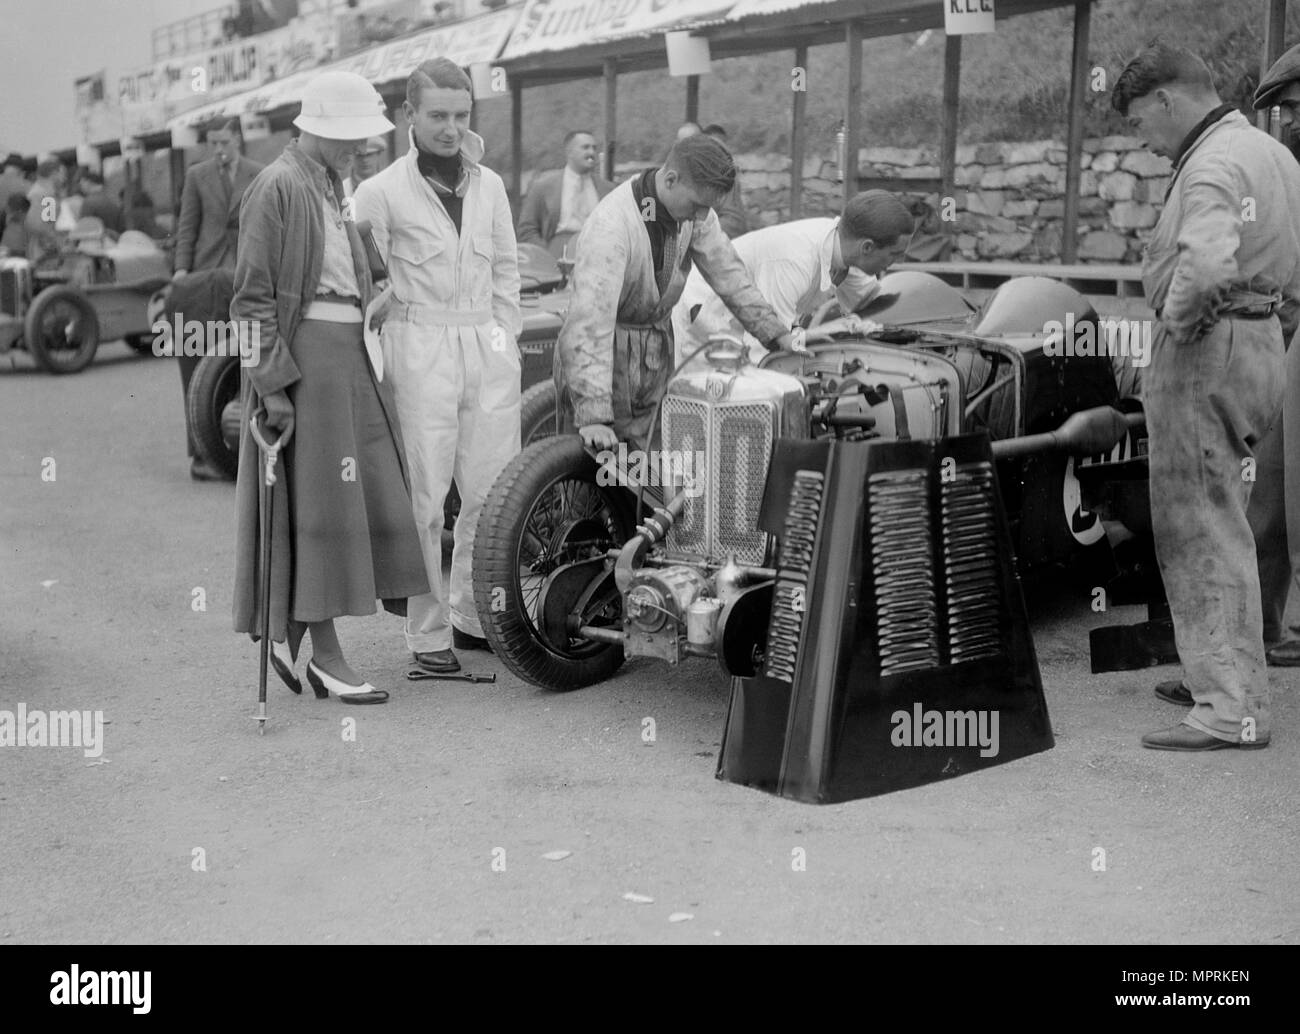 MG C type Midget of Hugh Hamilton in the pits at the RAC TT Race, Ards Circuit, Belfast, 1932. Artist: Bill Brunell. - Stock Image